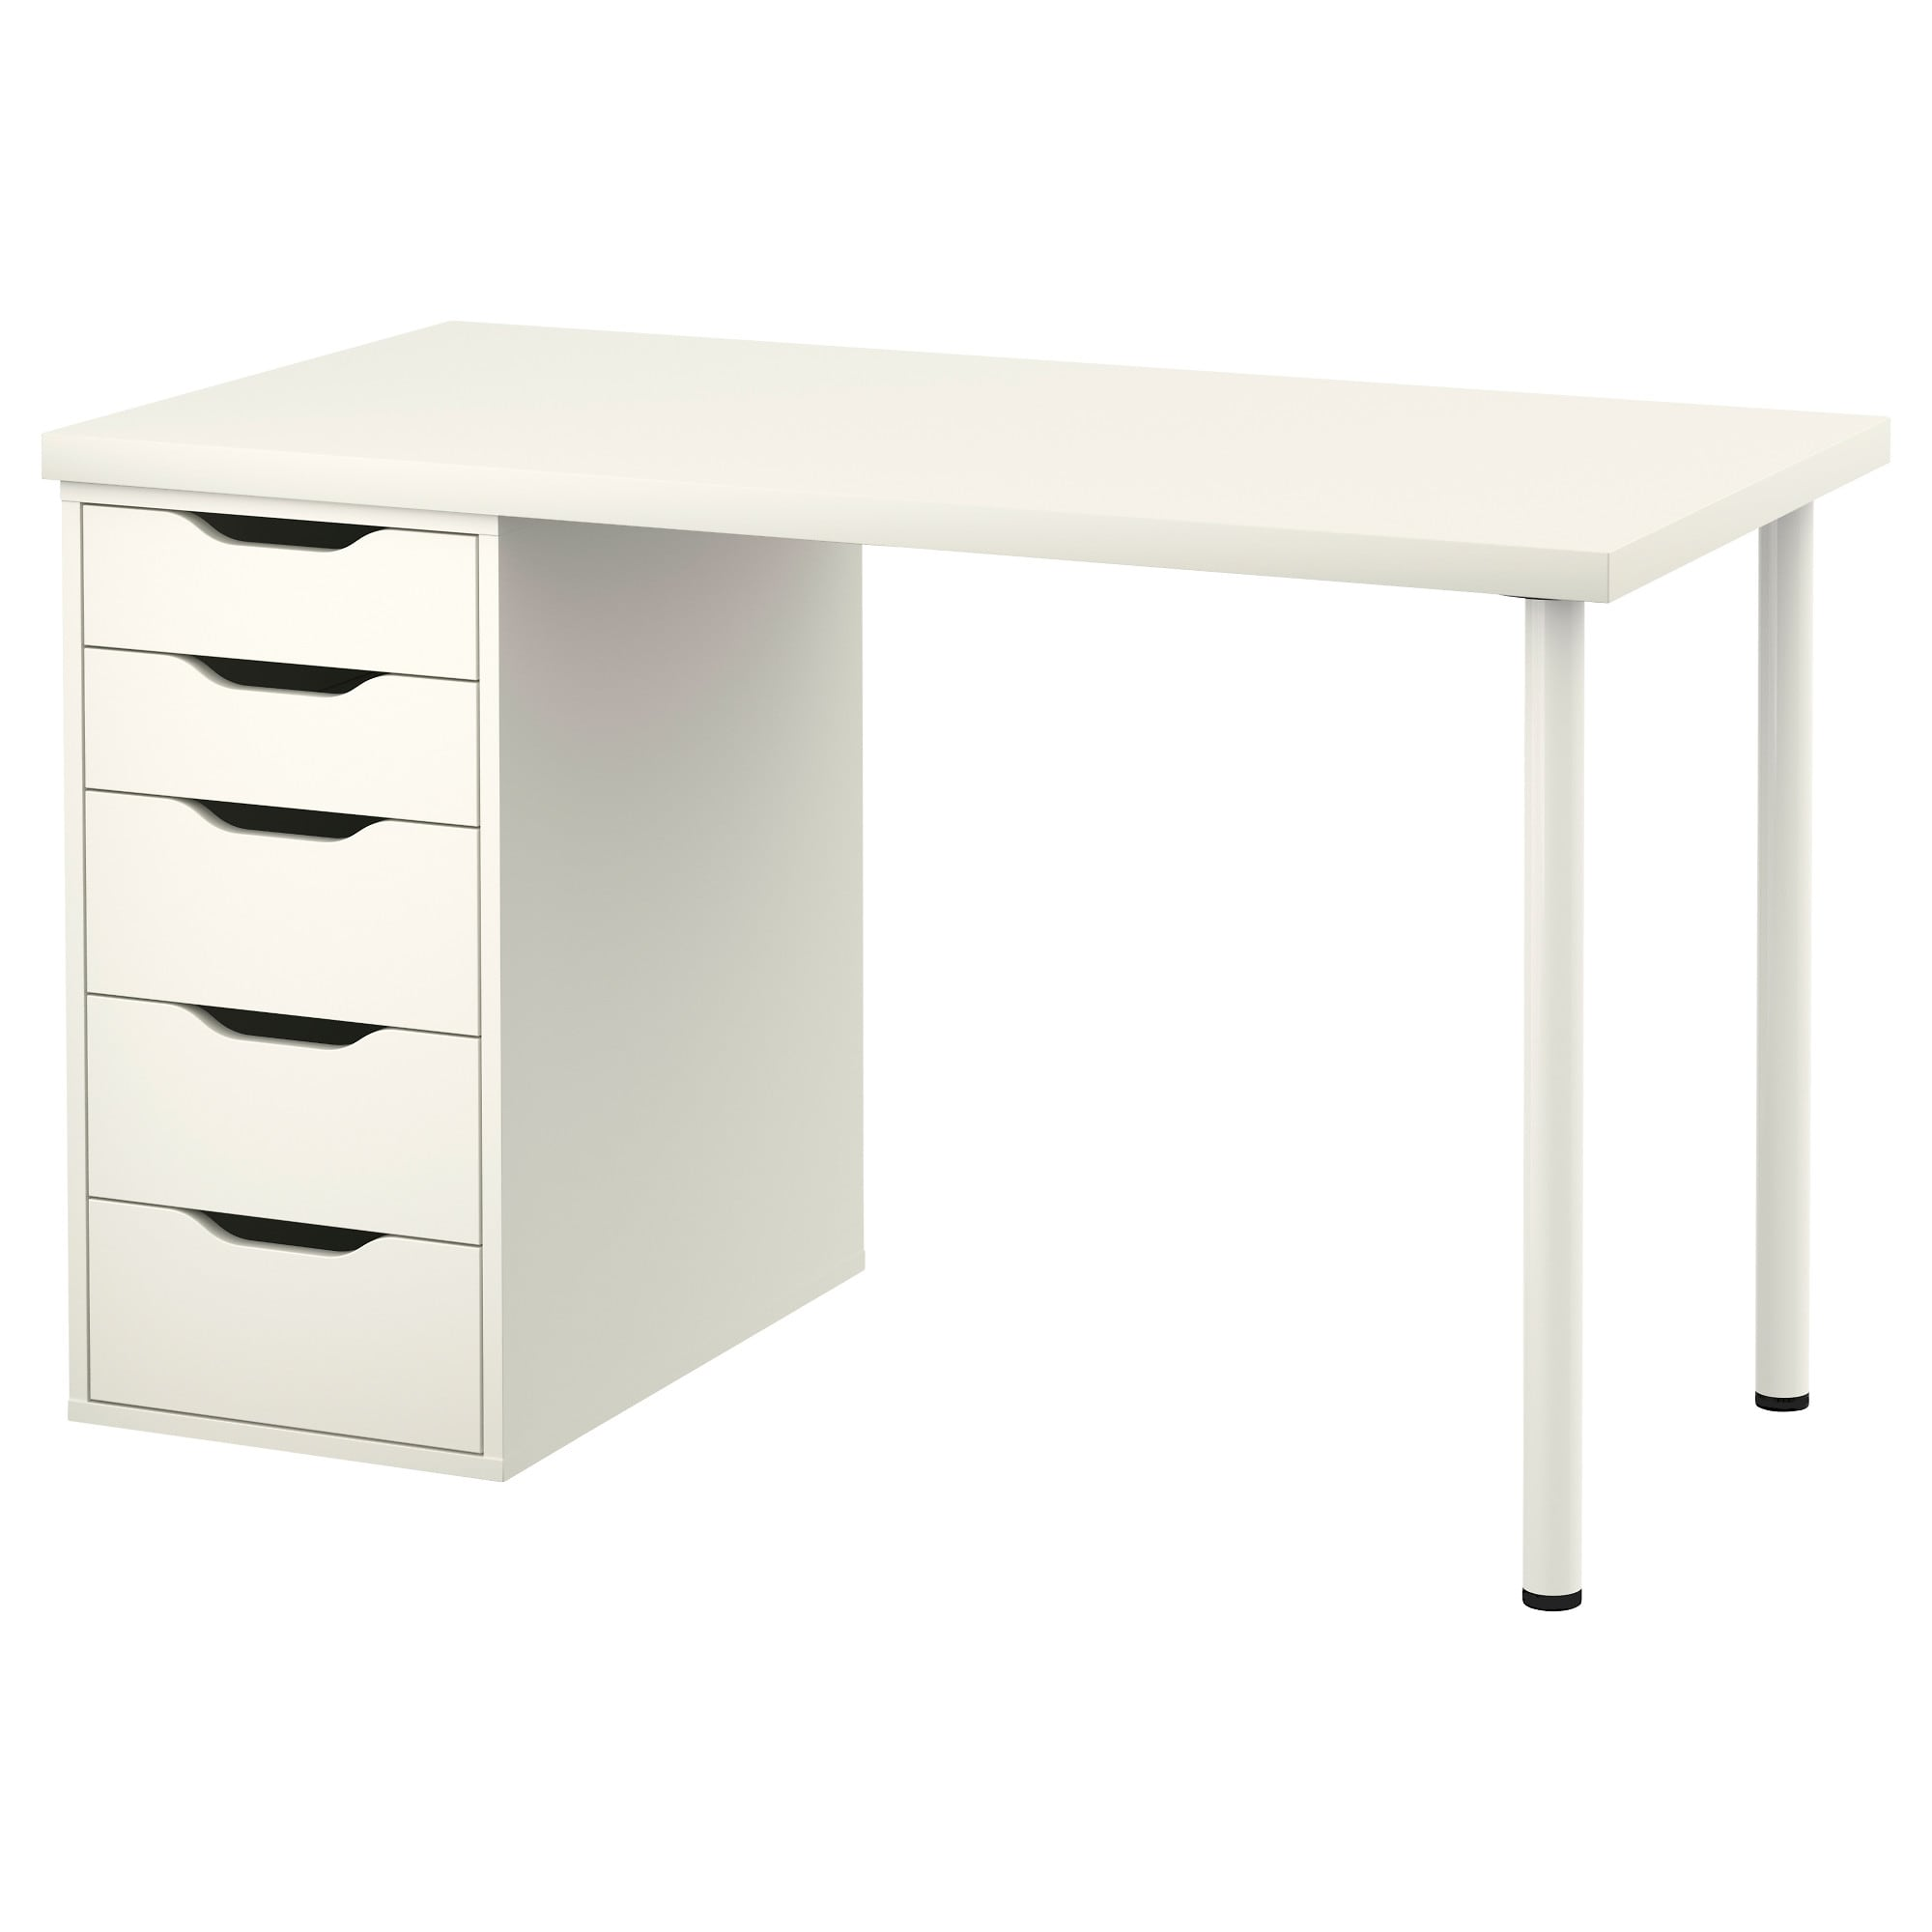 Ikea Table Linnmon Alex Table White In 2019 D R E A M R O O M Ikea